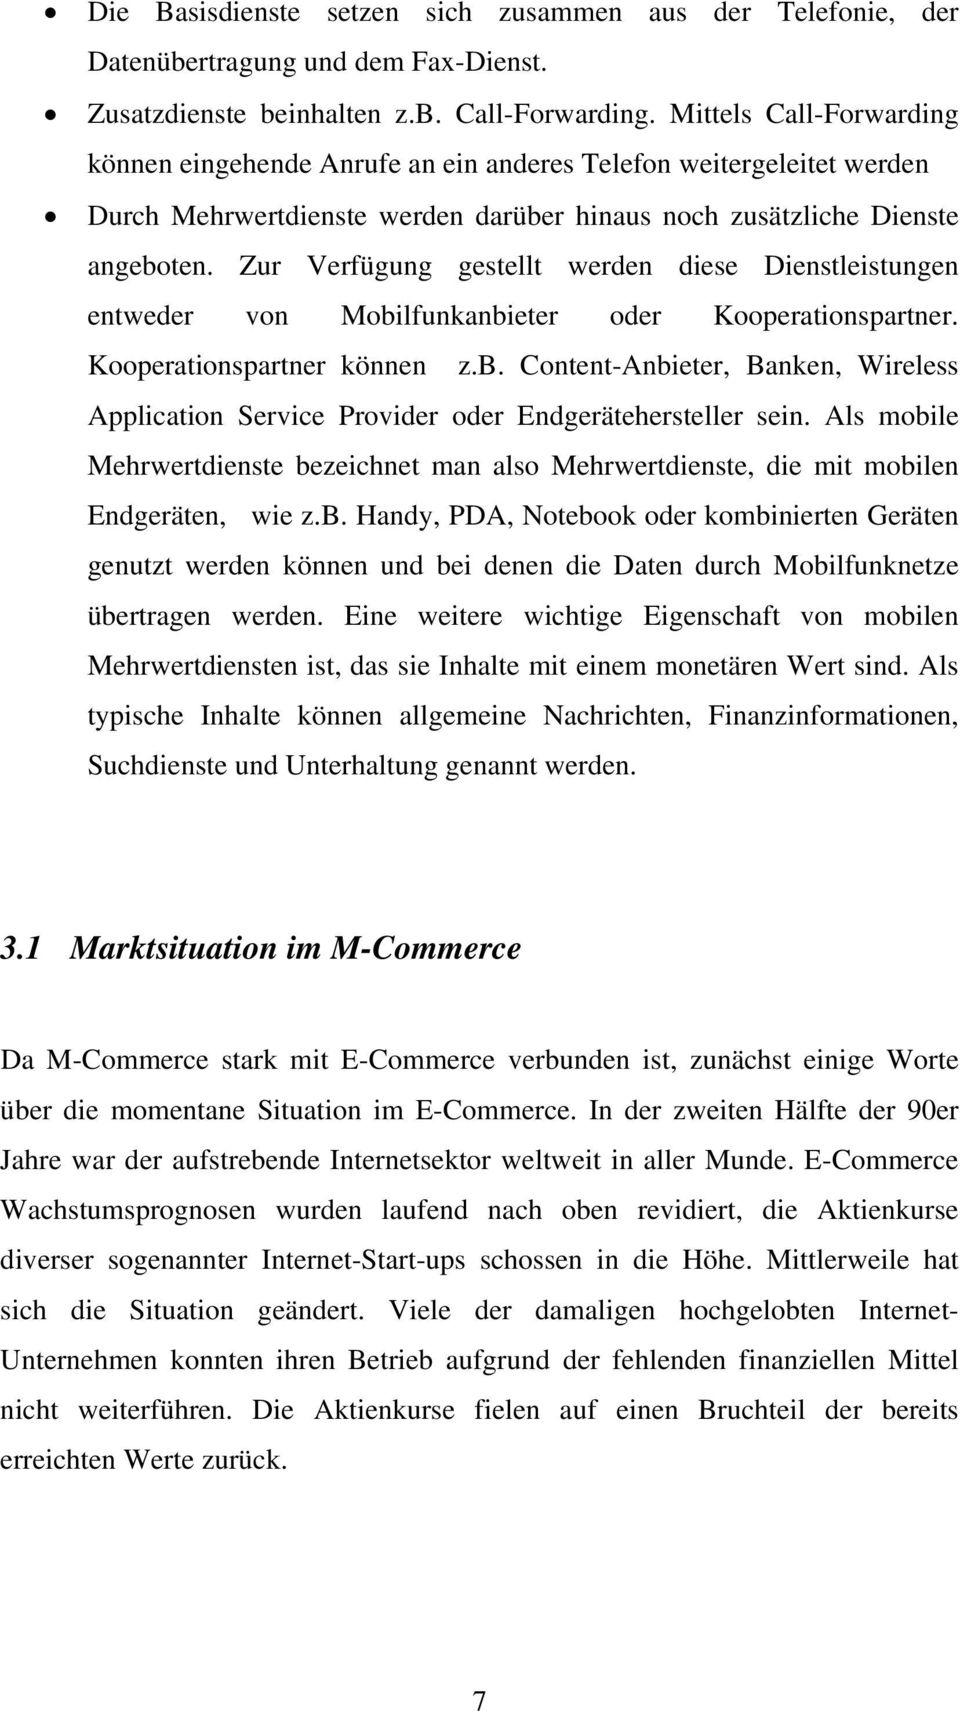 Zur Verfügung gestellt werden diese Dienstleistungen entweder von Mobilfunkanbieter oder Kooperationspartner. Kooperationspartner können z.b. Content-Anbieter, Banken, Wireless Application Service Provider oder Endgerätehersteller sein.